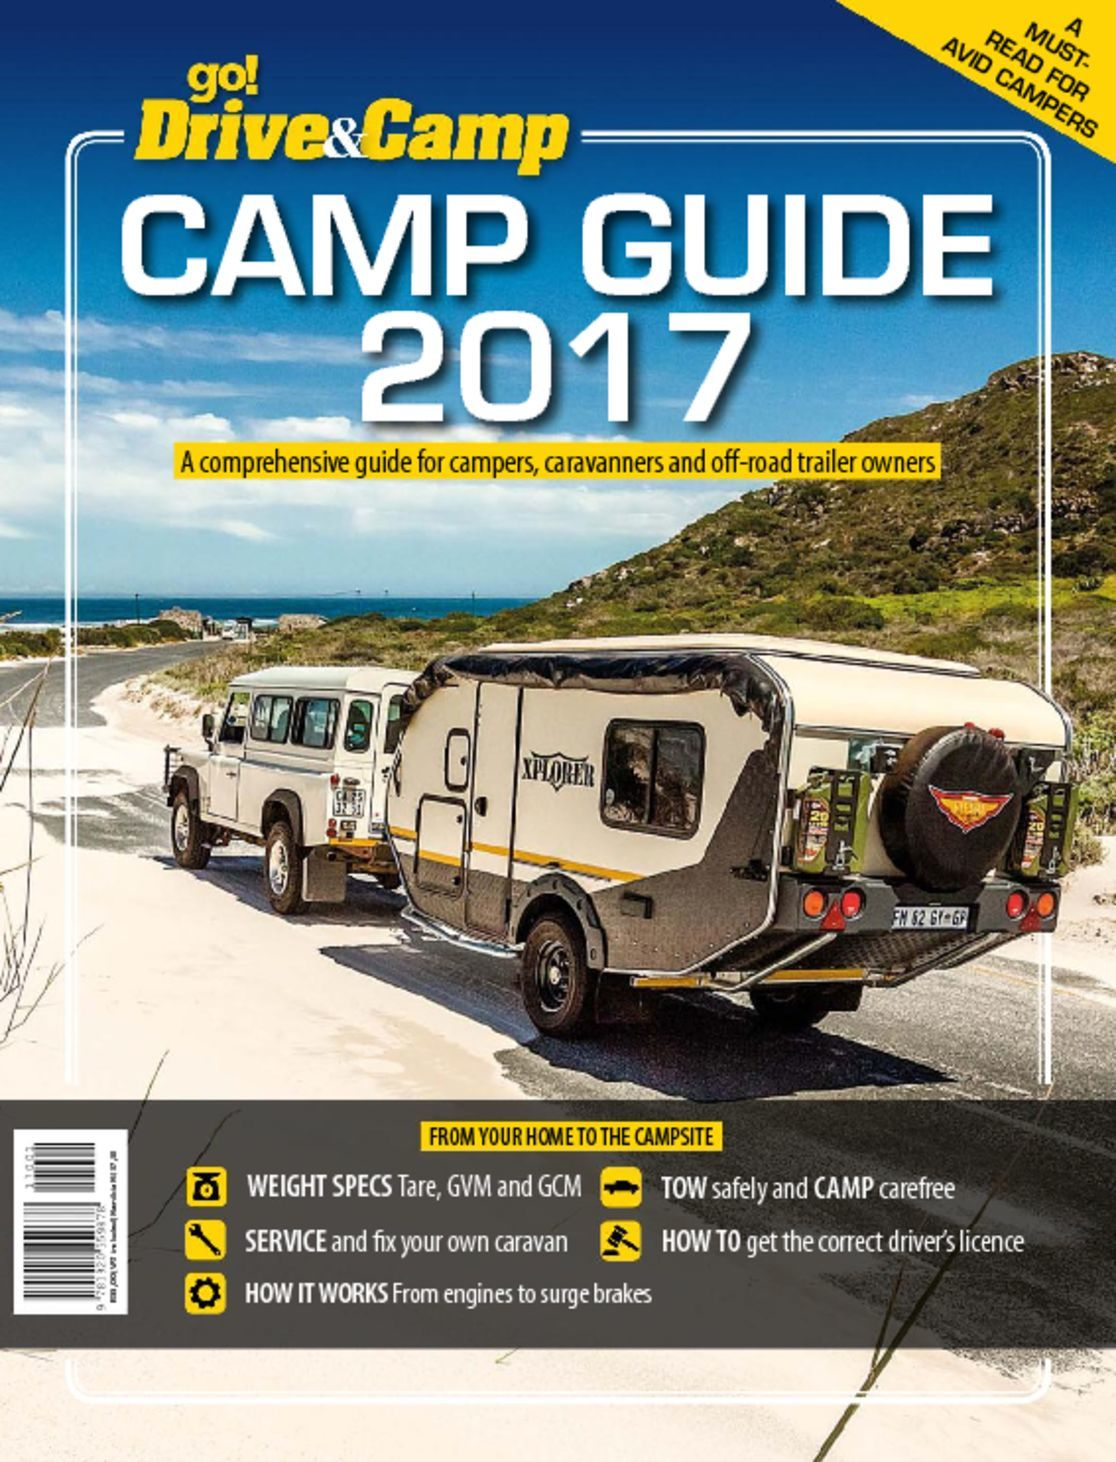 Go Drive Camp Camping Guide Digital